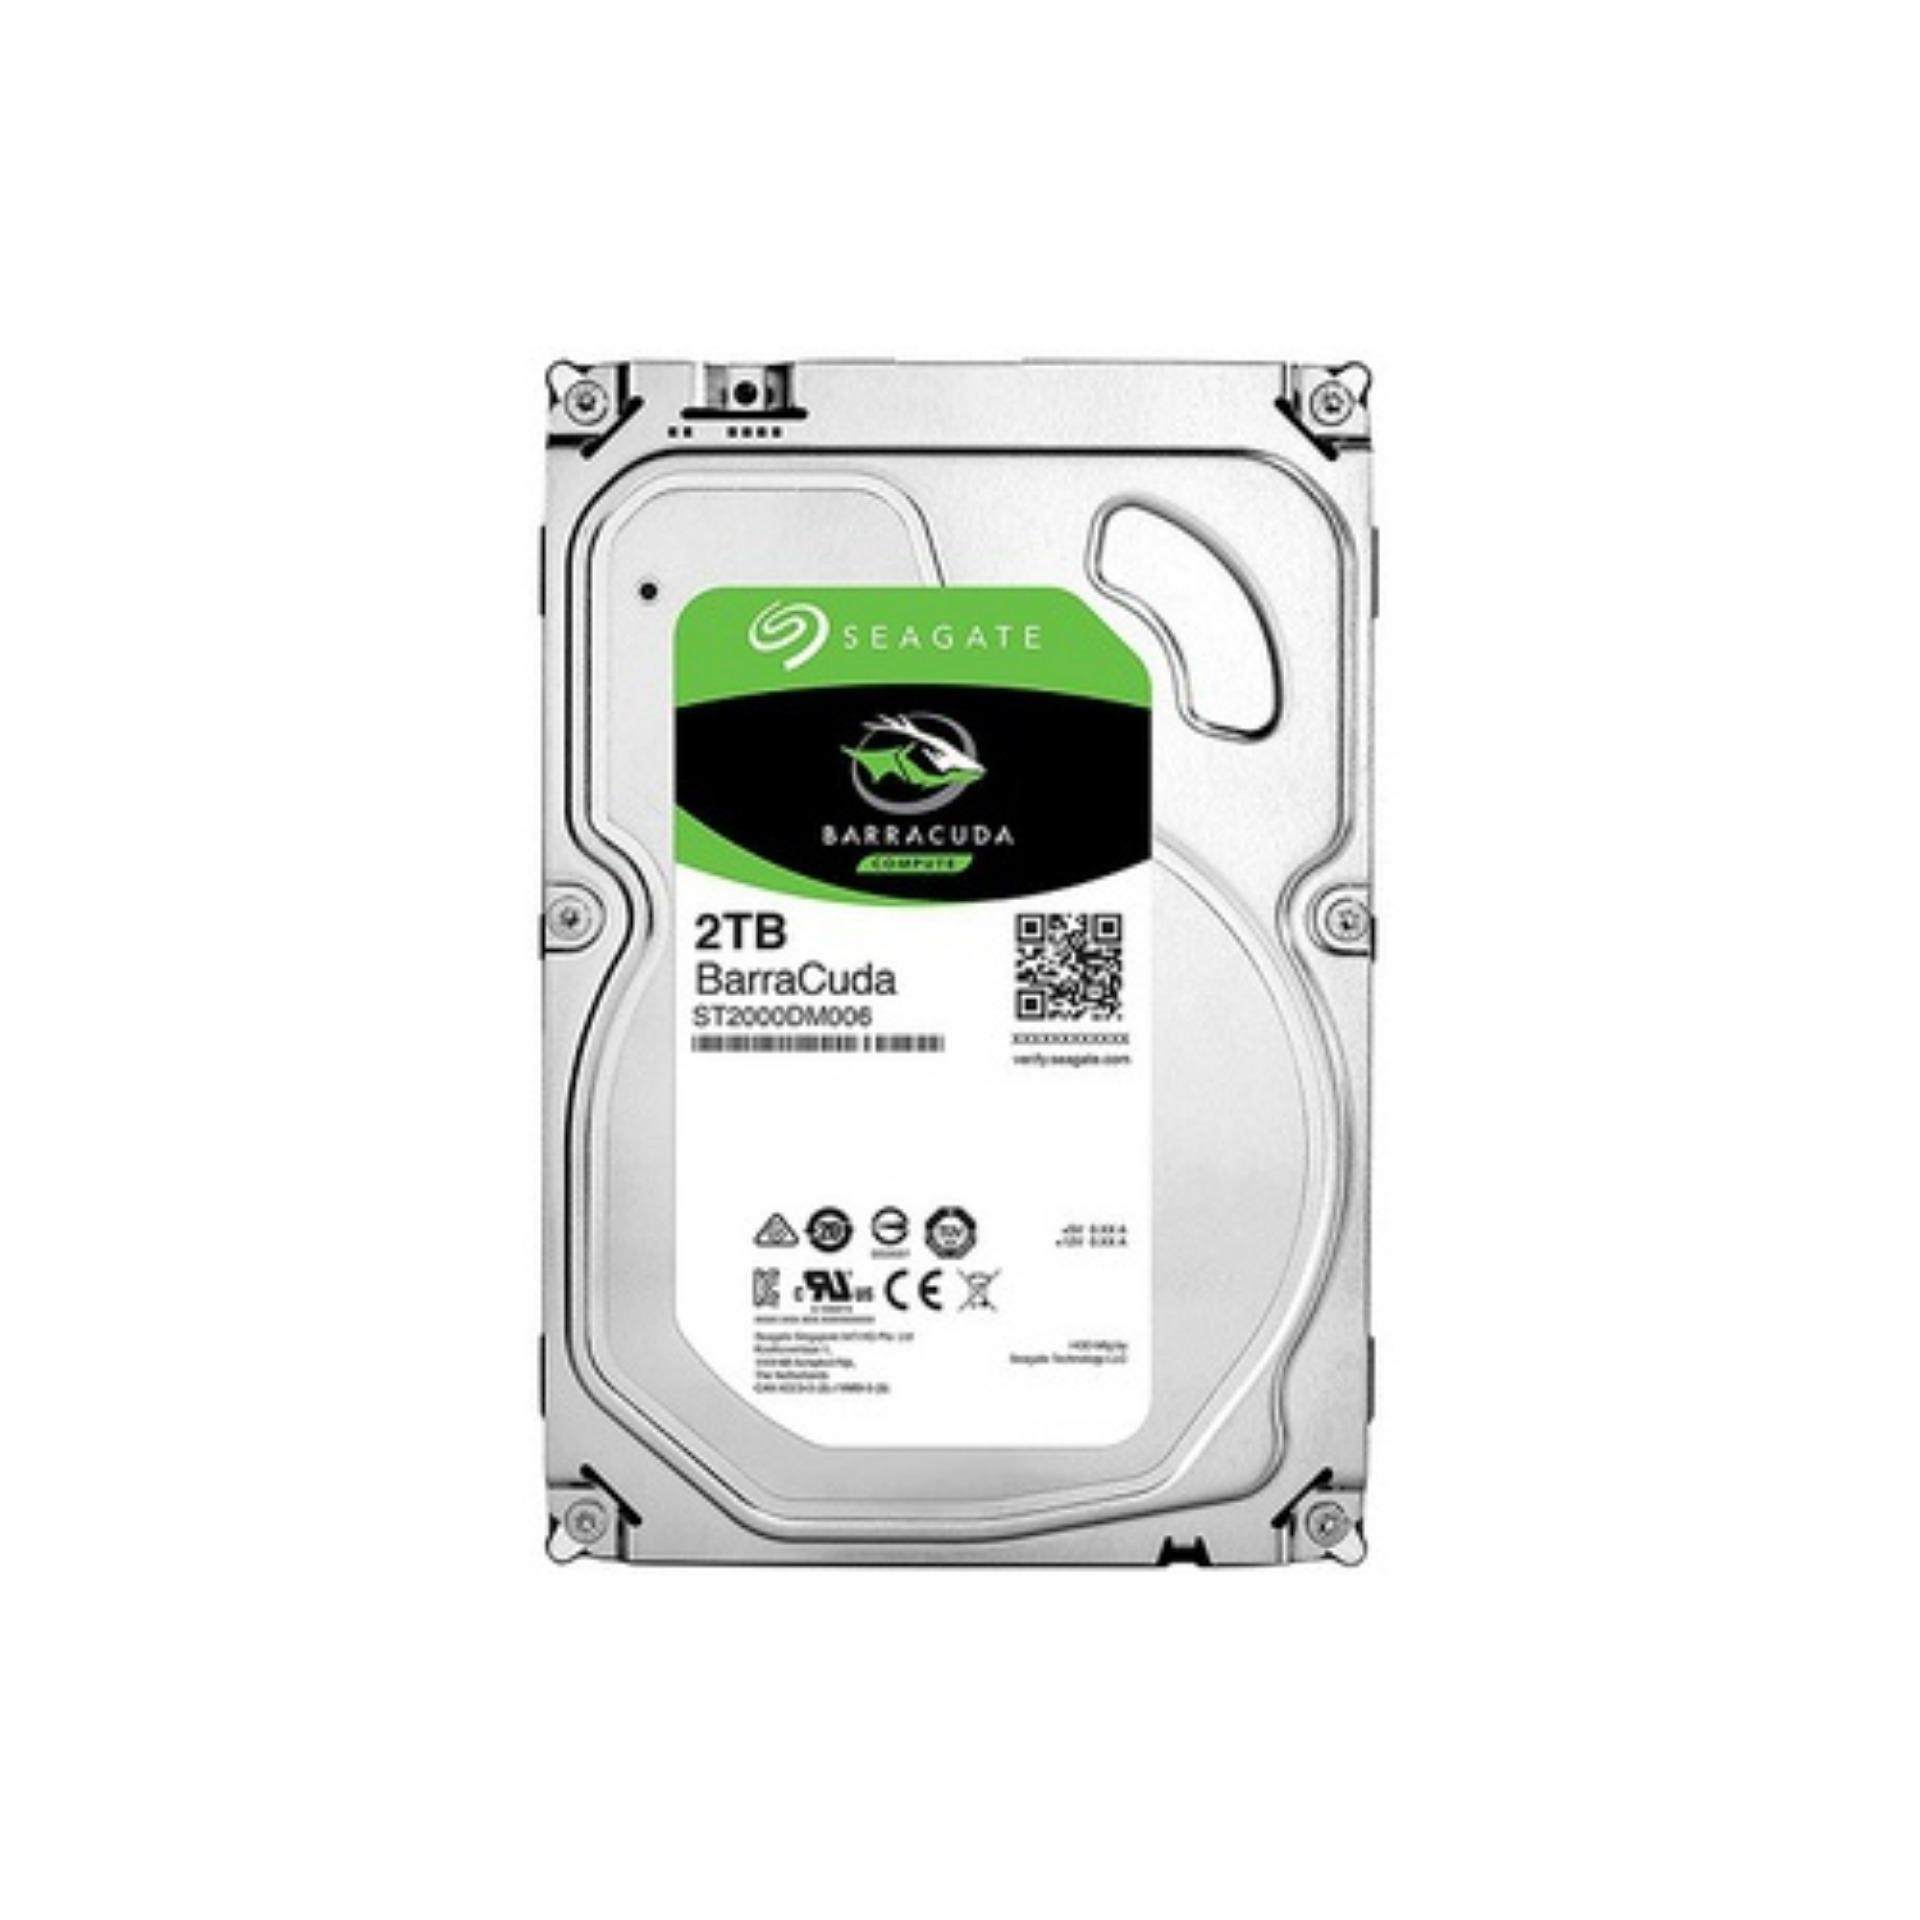 HDD Seagate Barracuda 2TB/7200 Sata 256MB 3,5